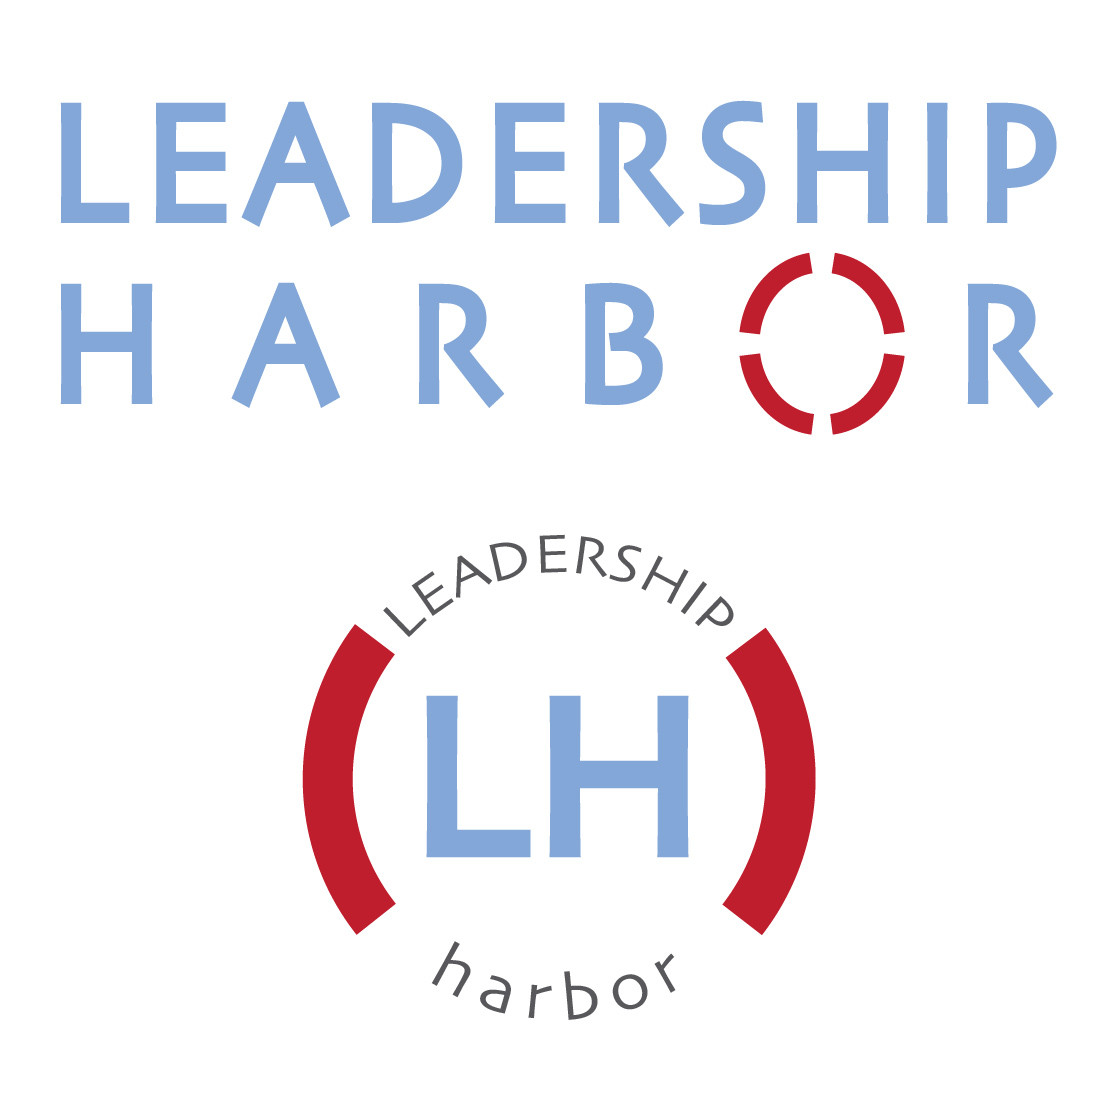 "I worked with the company at their start to create a logo. Part of the companies mission includes the Harbor, ""We help you train in a safe environment - the harbor - on your way to becoming all you were meant to be."" With this information we decided a life preserver was a fitting symbol."